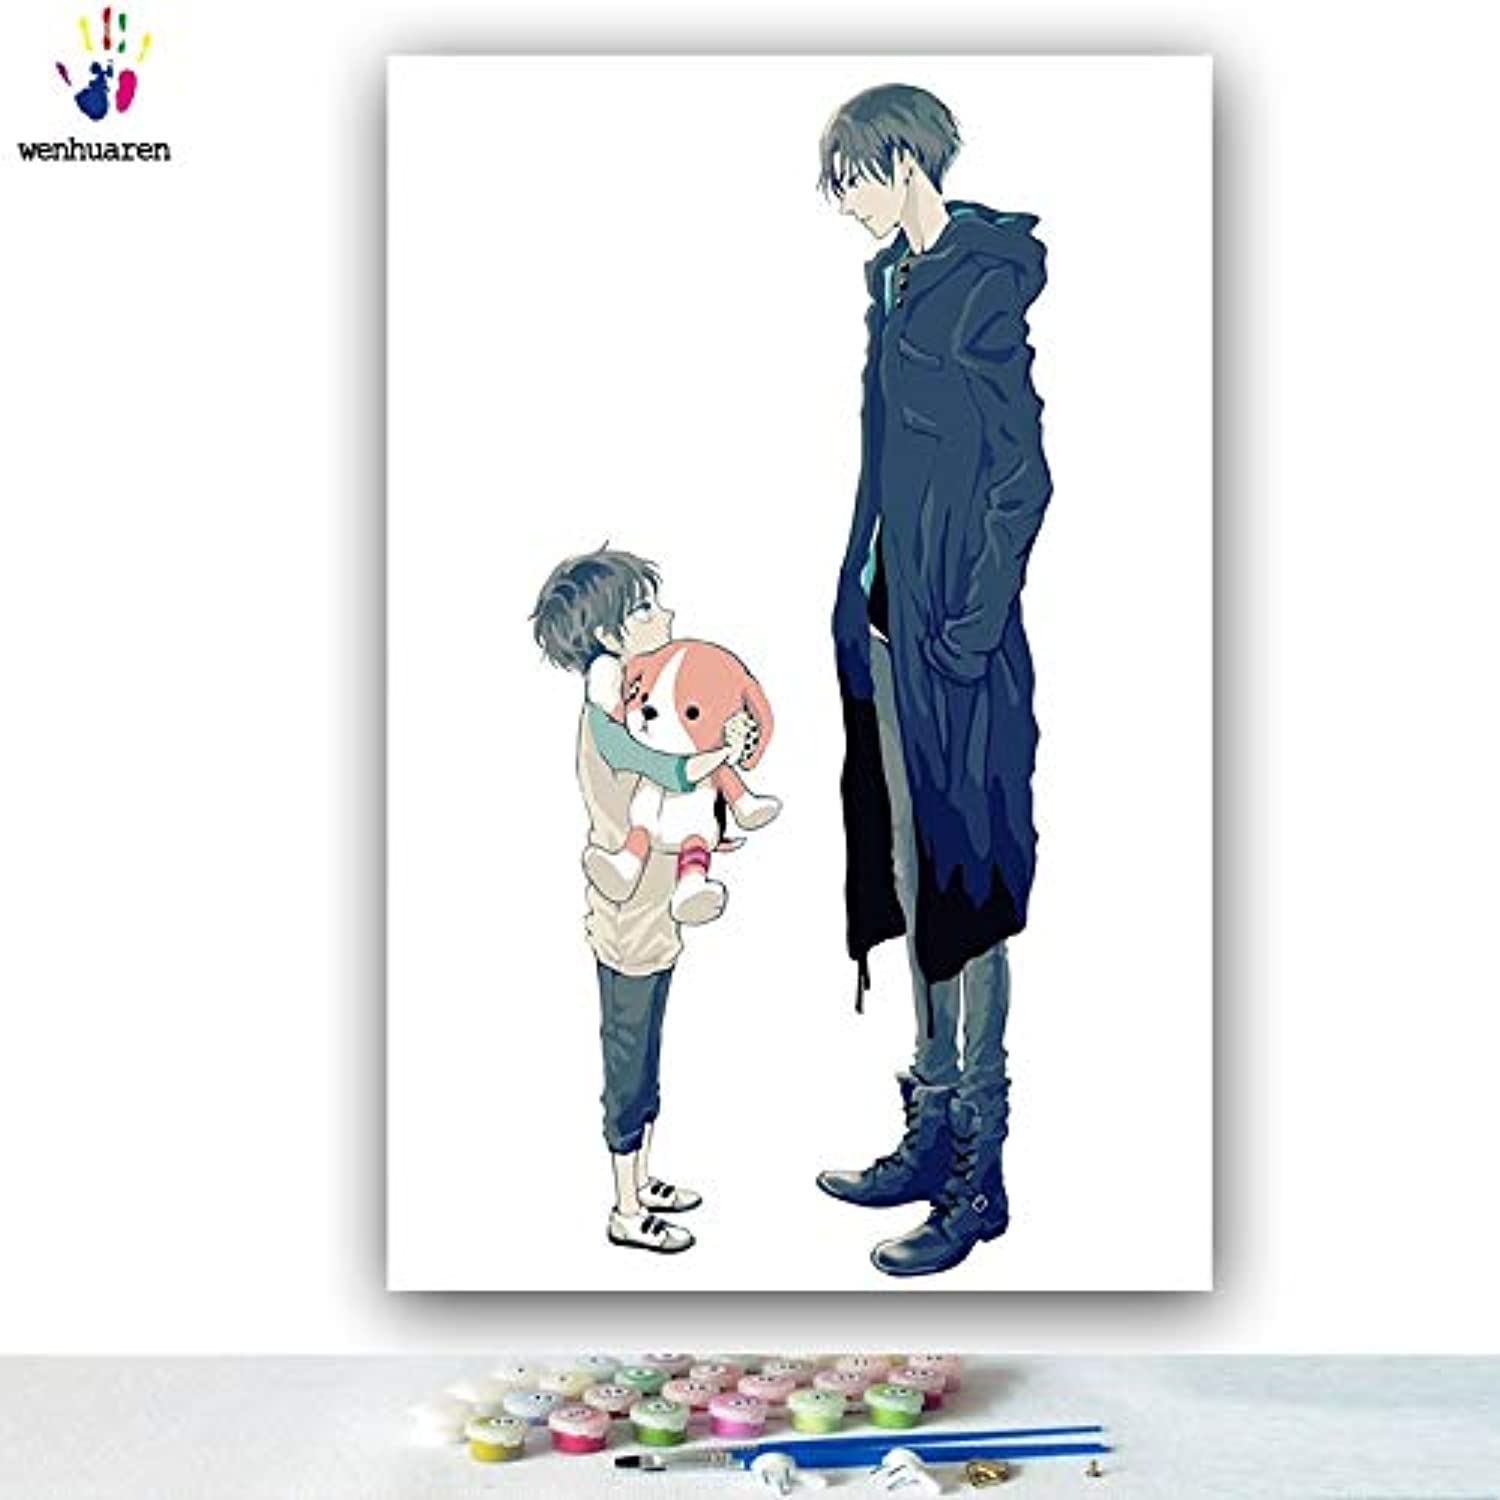 KYKDY DIY colorings Pictures by Numbers with colors Attack on Titan Junior Comics Picture Drawing Painting by Numbers Framed Home,0330,70x90 no Frame